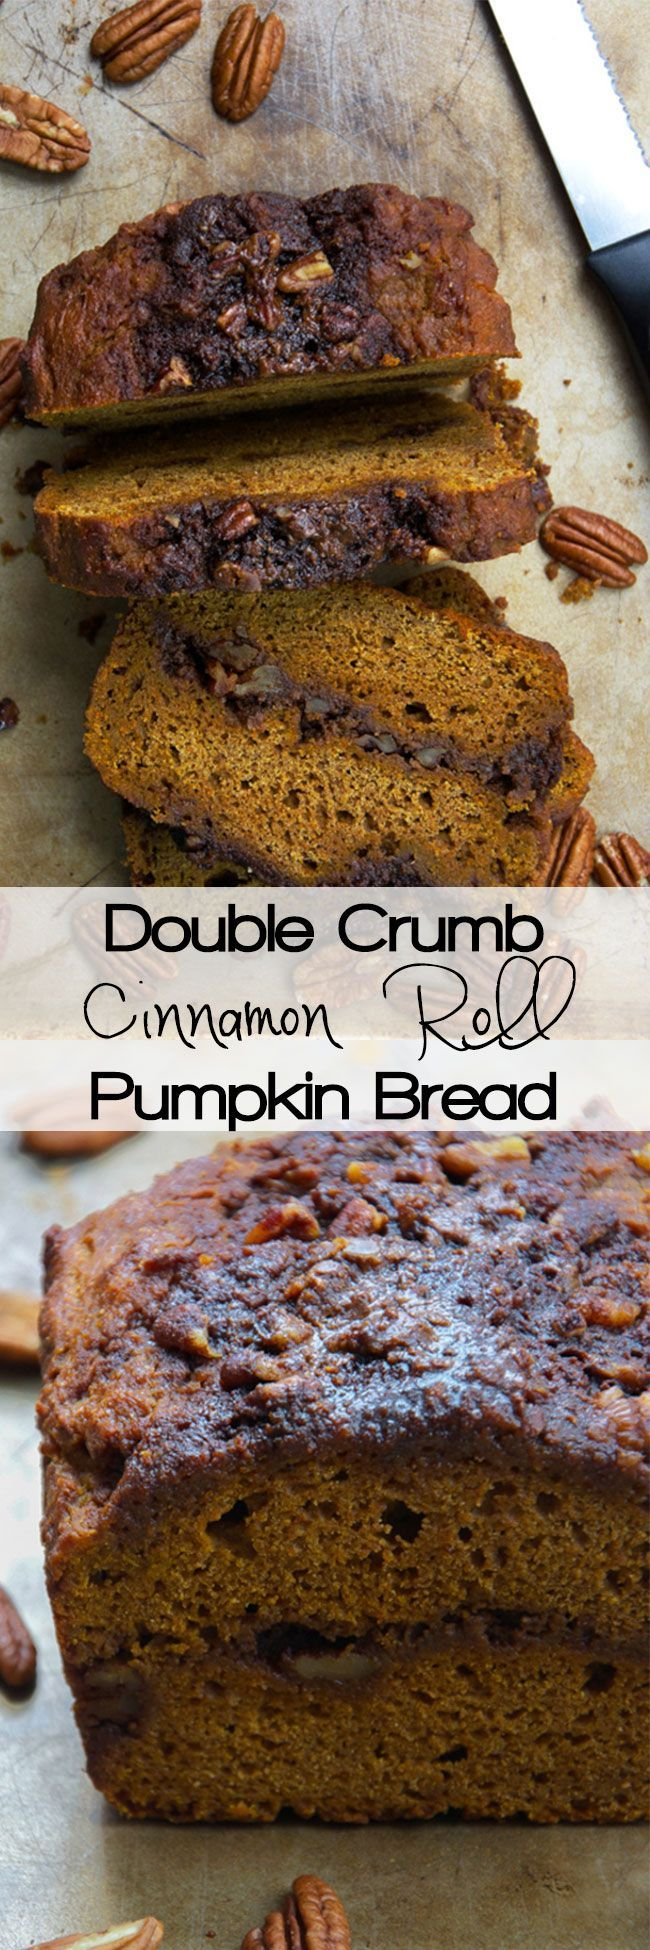 271 best bread images on pinterest bread recipes conch fritters healthier double crumb cinnamon roll pumpkin bread is moist and filled with a double sugary cinnamon forumfinder Images